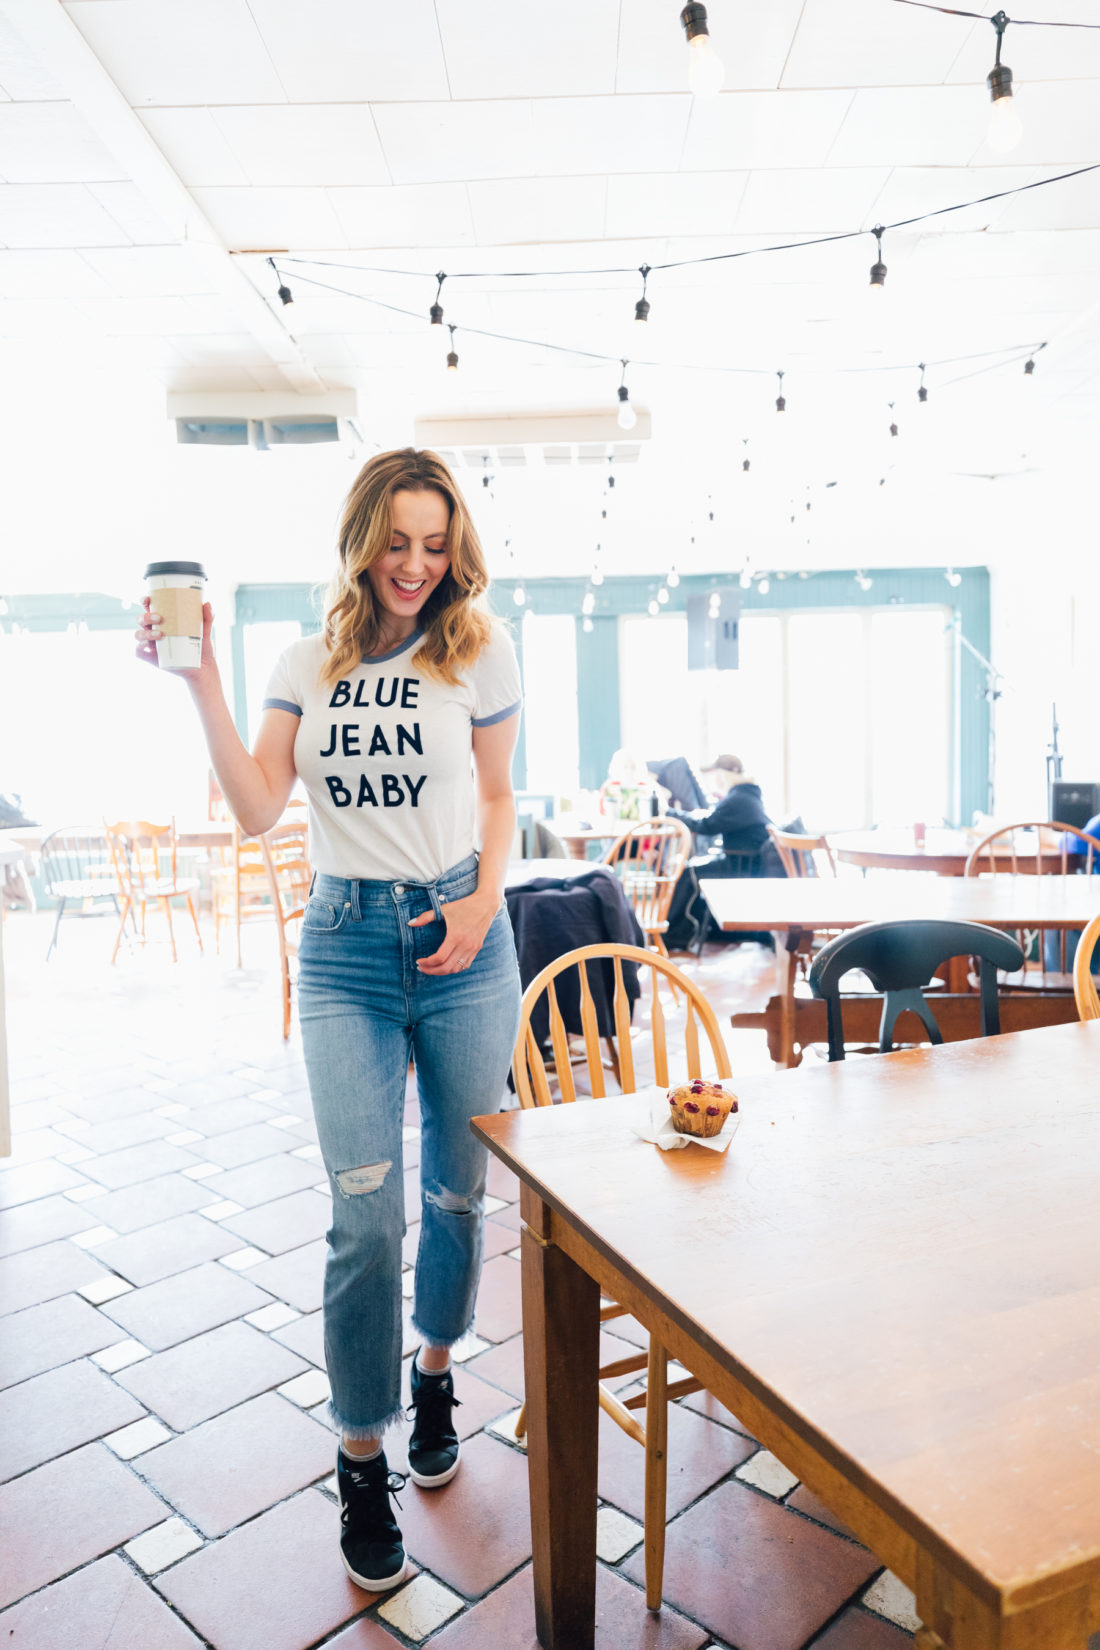 Eva Amurri Martino shares her favorite new denim pieces